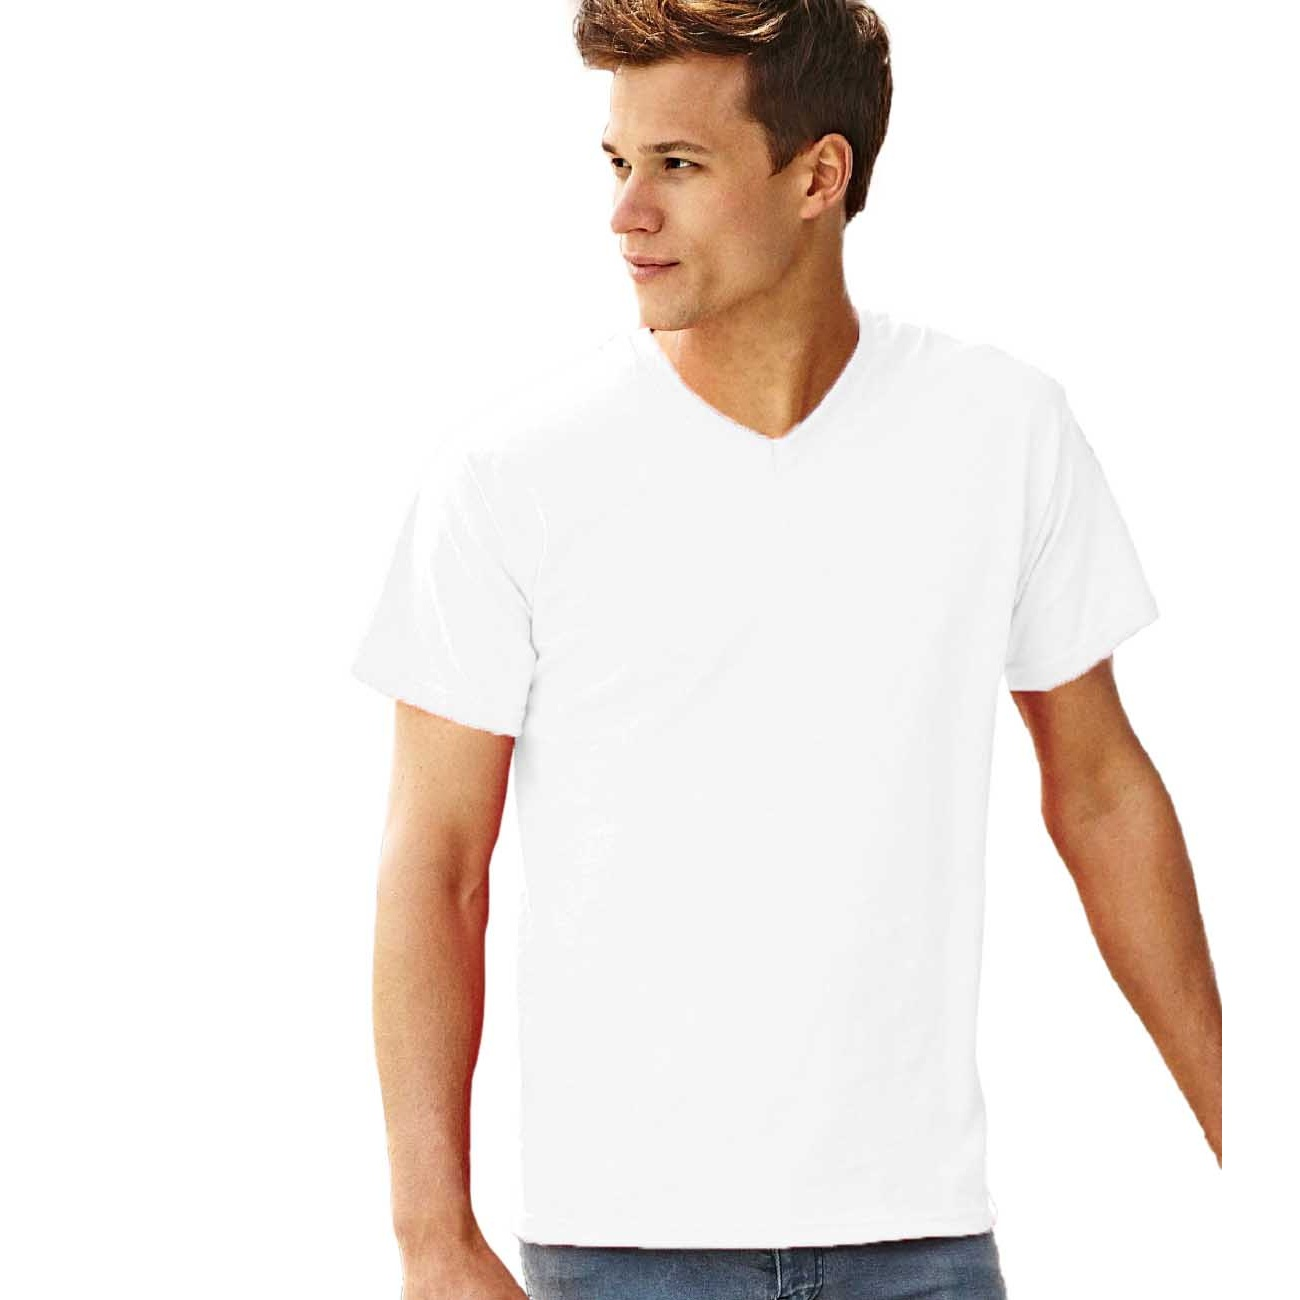 BC338 Fruit Of The Loom Mens Valueweight V-Neck T-Short Sleeve T-Shirt